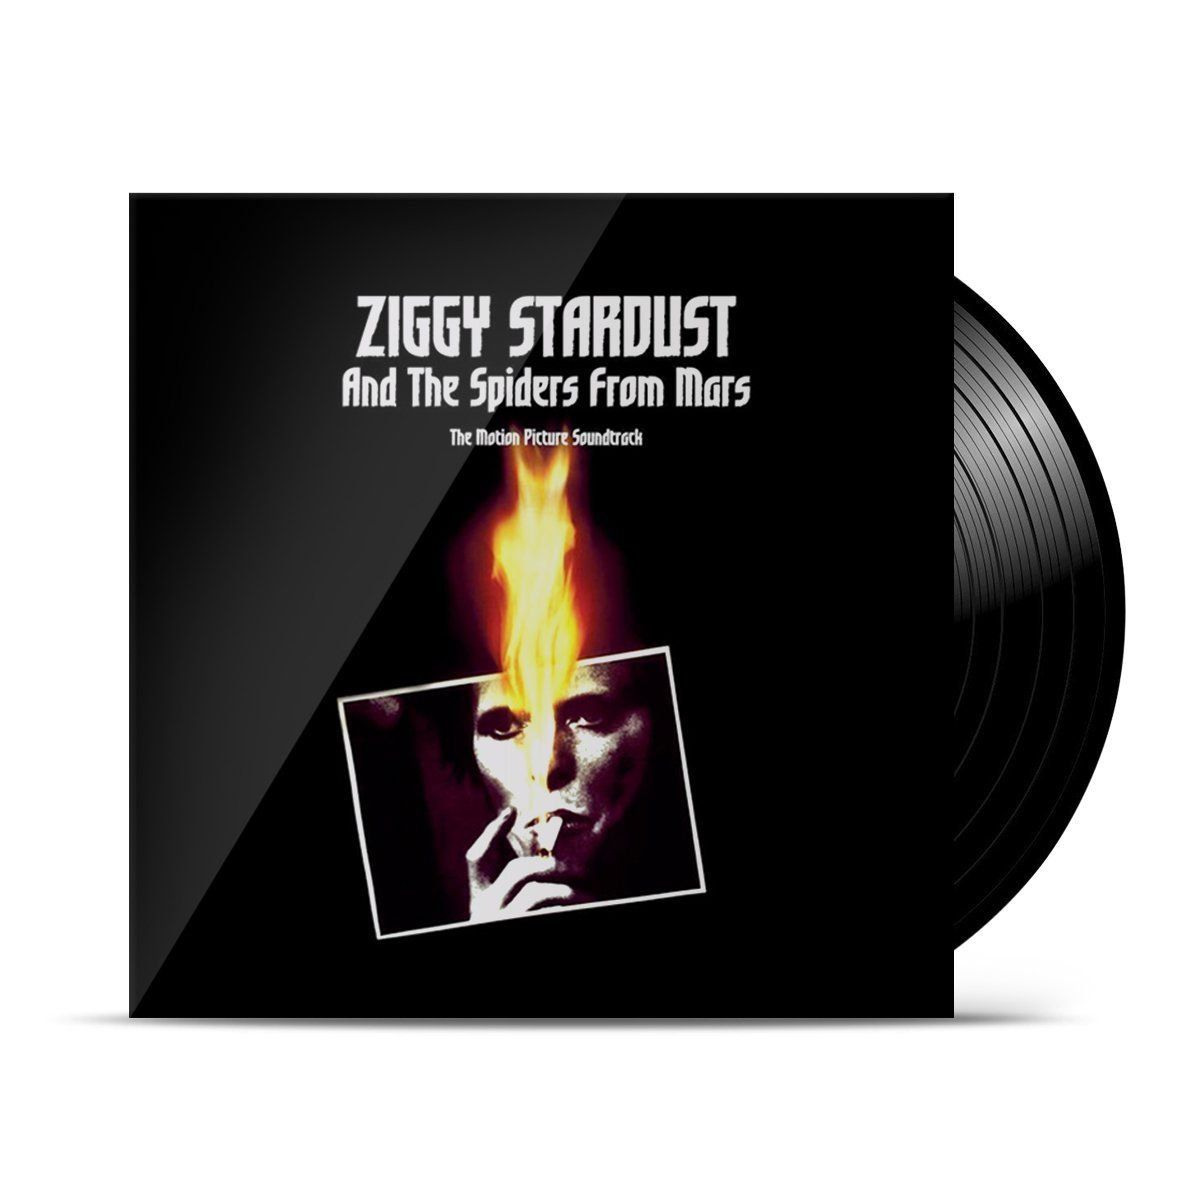 LP Duplo David Bowie Ziggy Stardust And The Spiders From Mars - Ost  - bandUP Store Marketplace